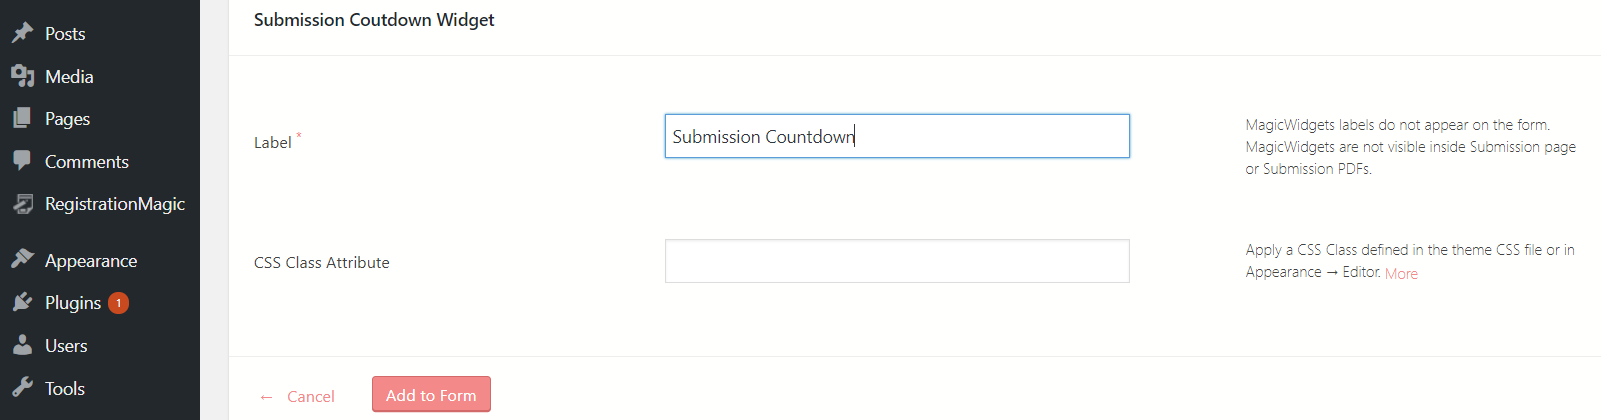 Submission Countdown in WordPress form countdown widget